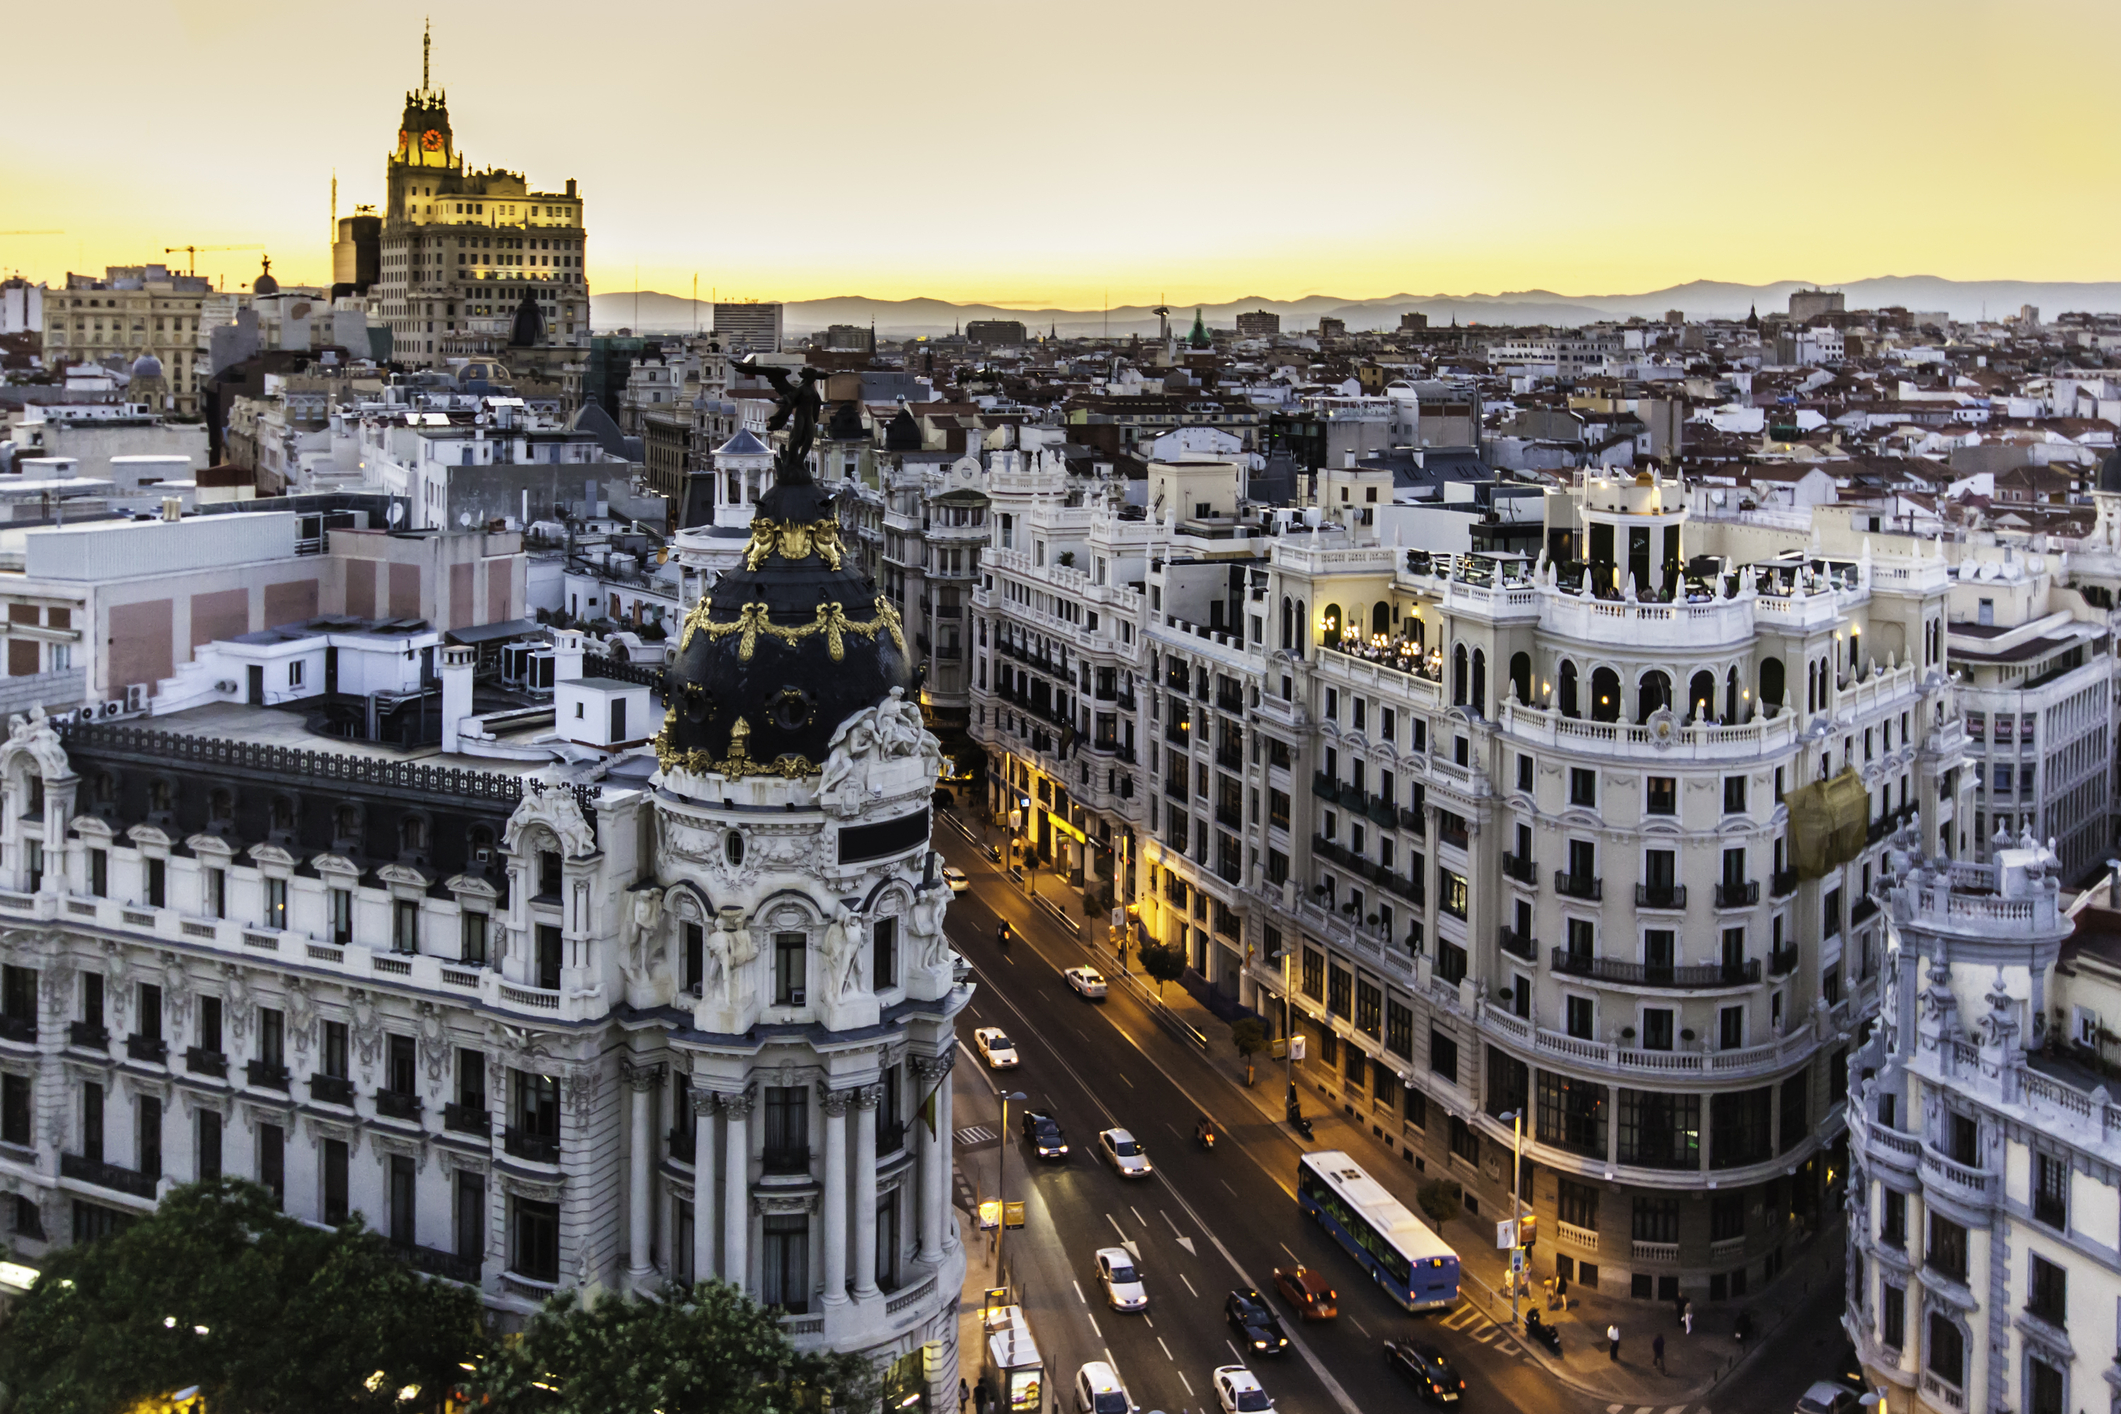 Which places of interest in Madrid are worth seeing